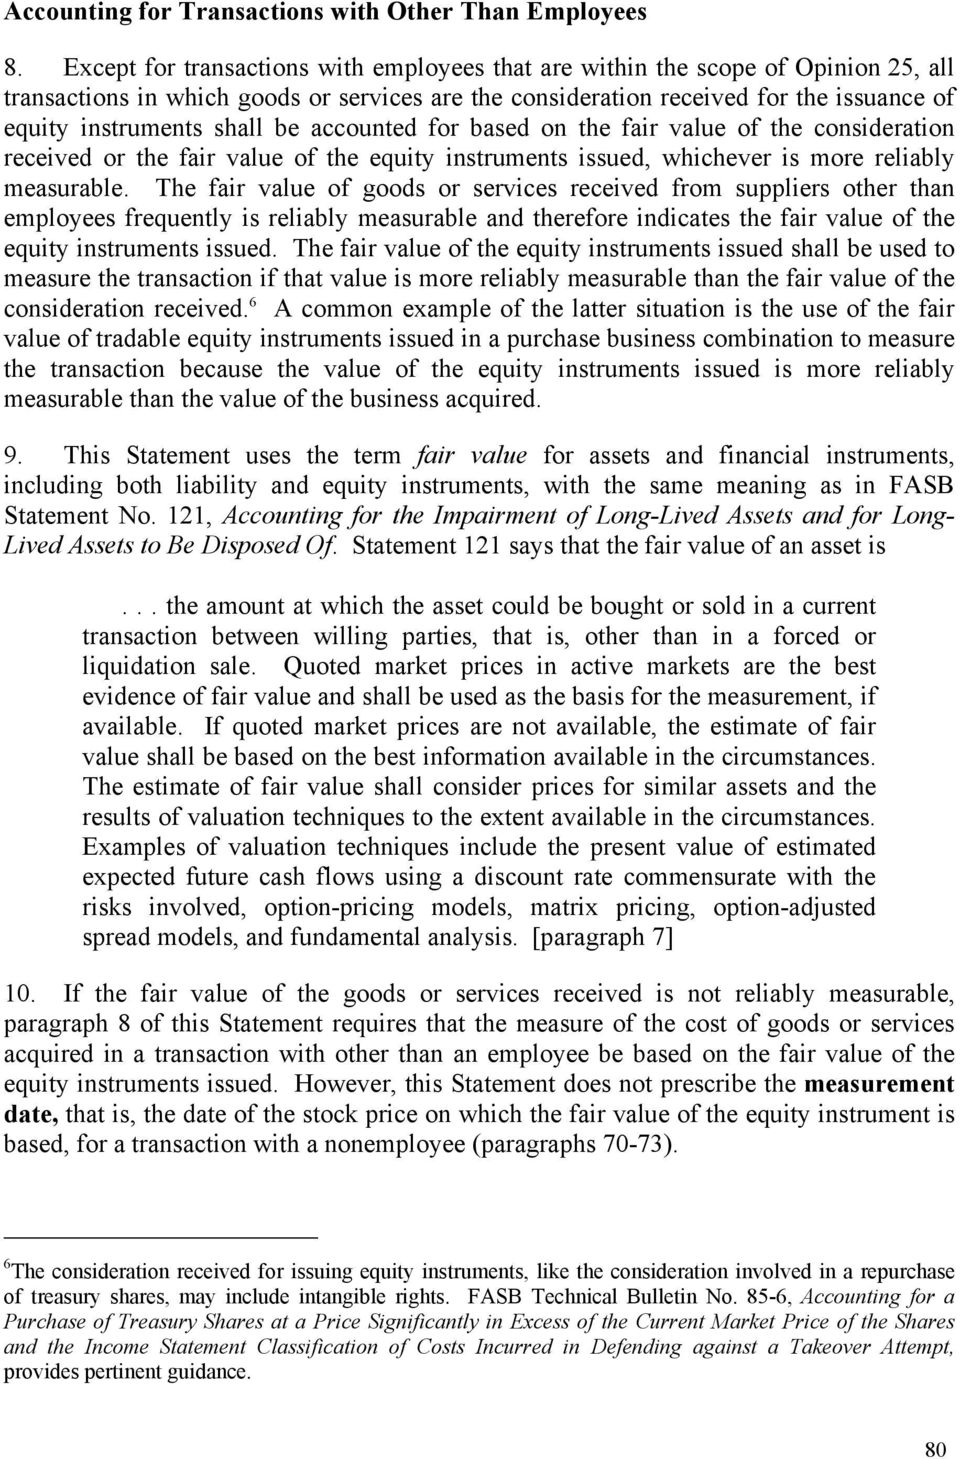 be accounted for based on the fair value of the consideration received or the fair value of the equity instruments issued, whichever is more reliably measurable.